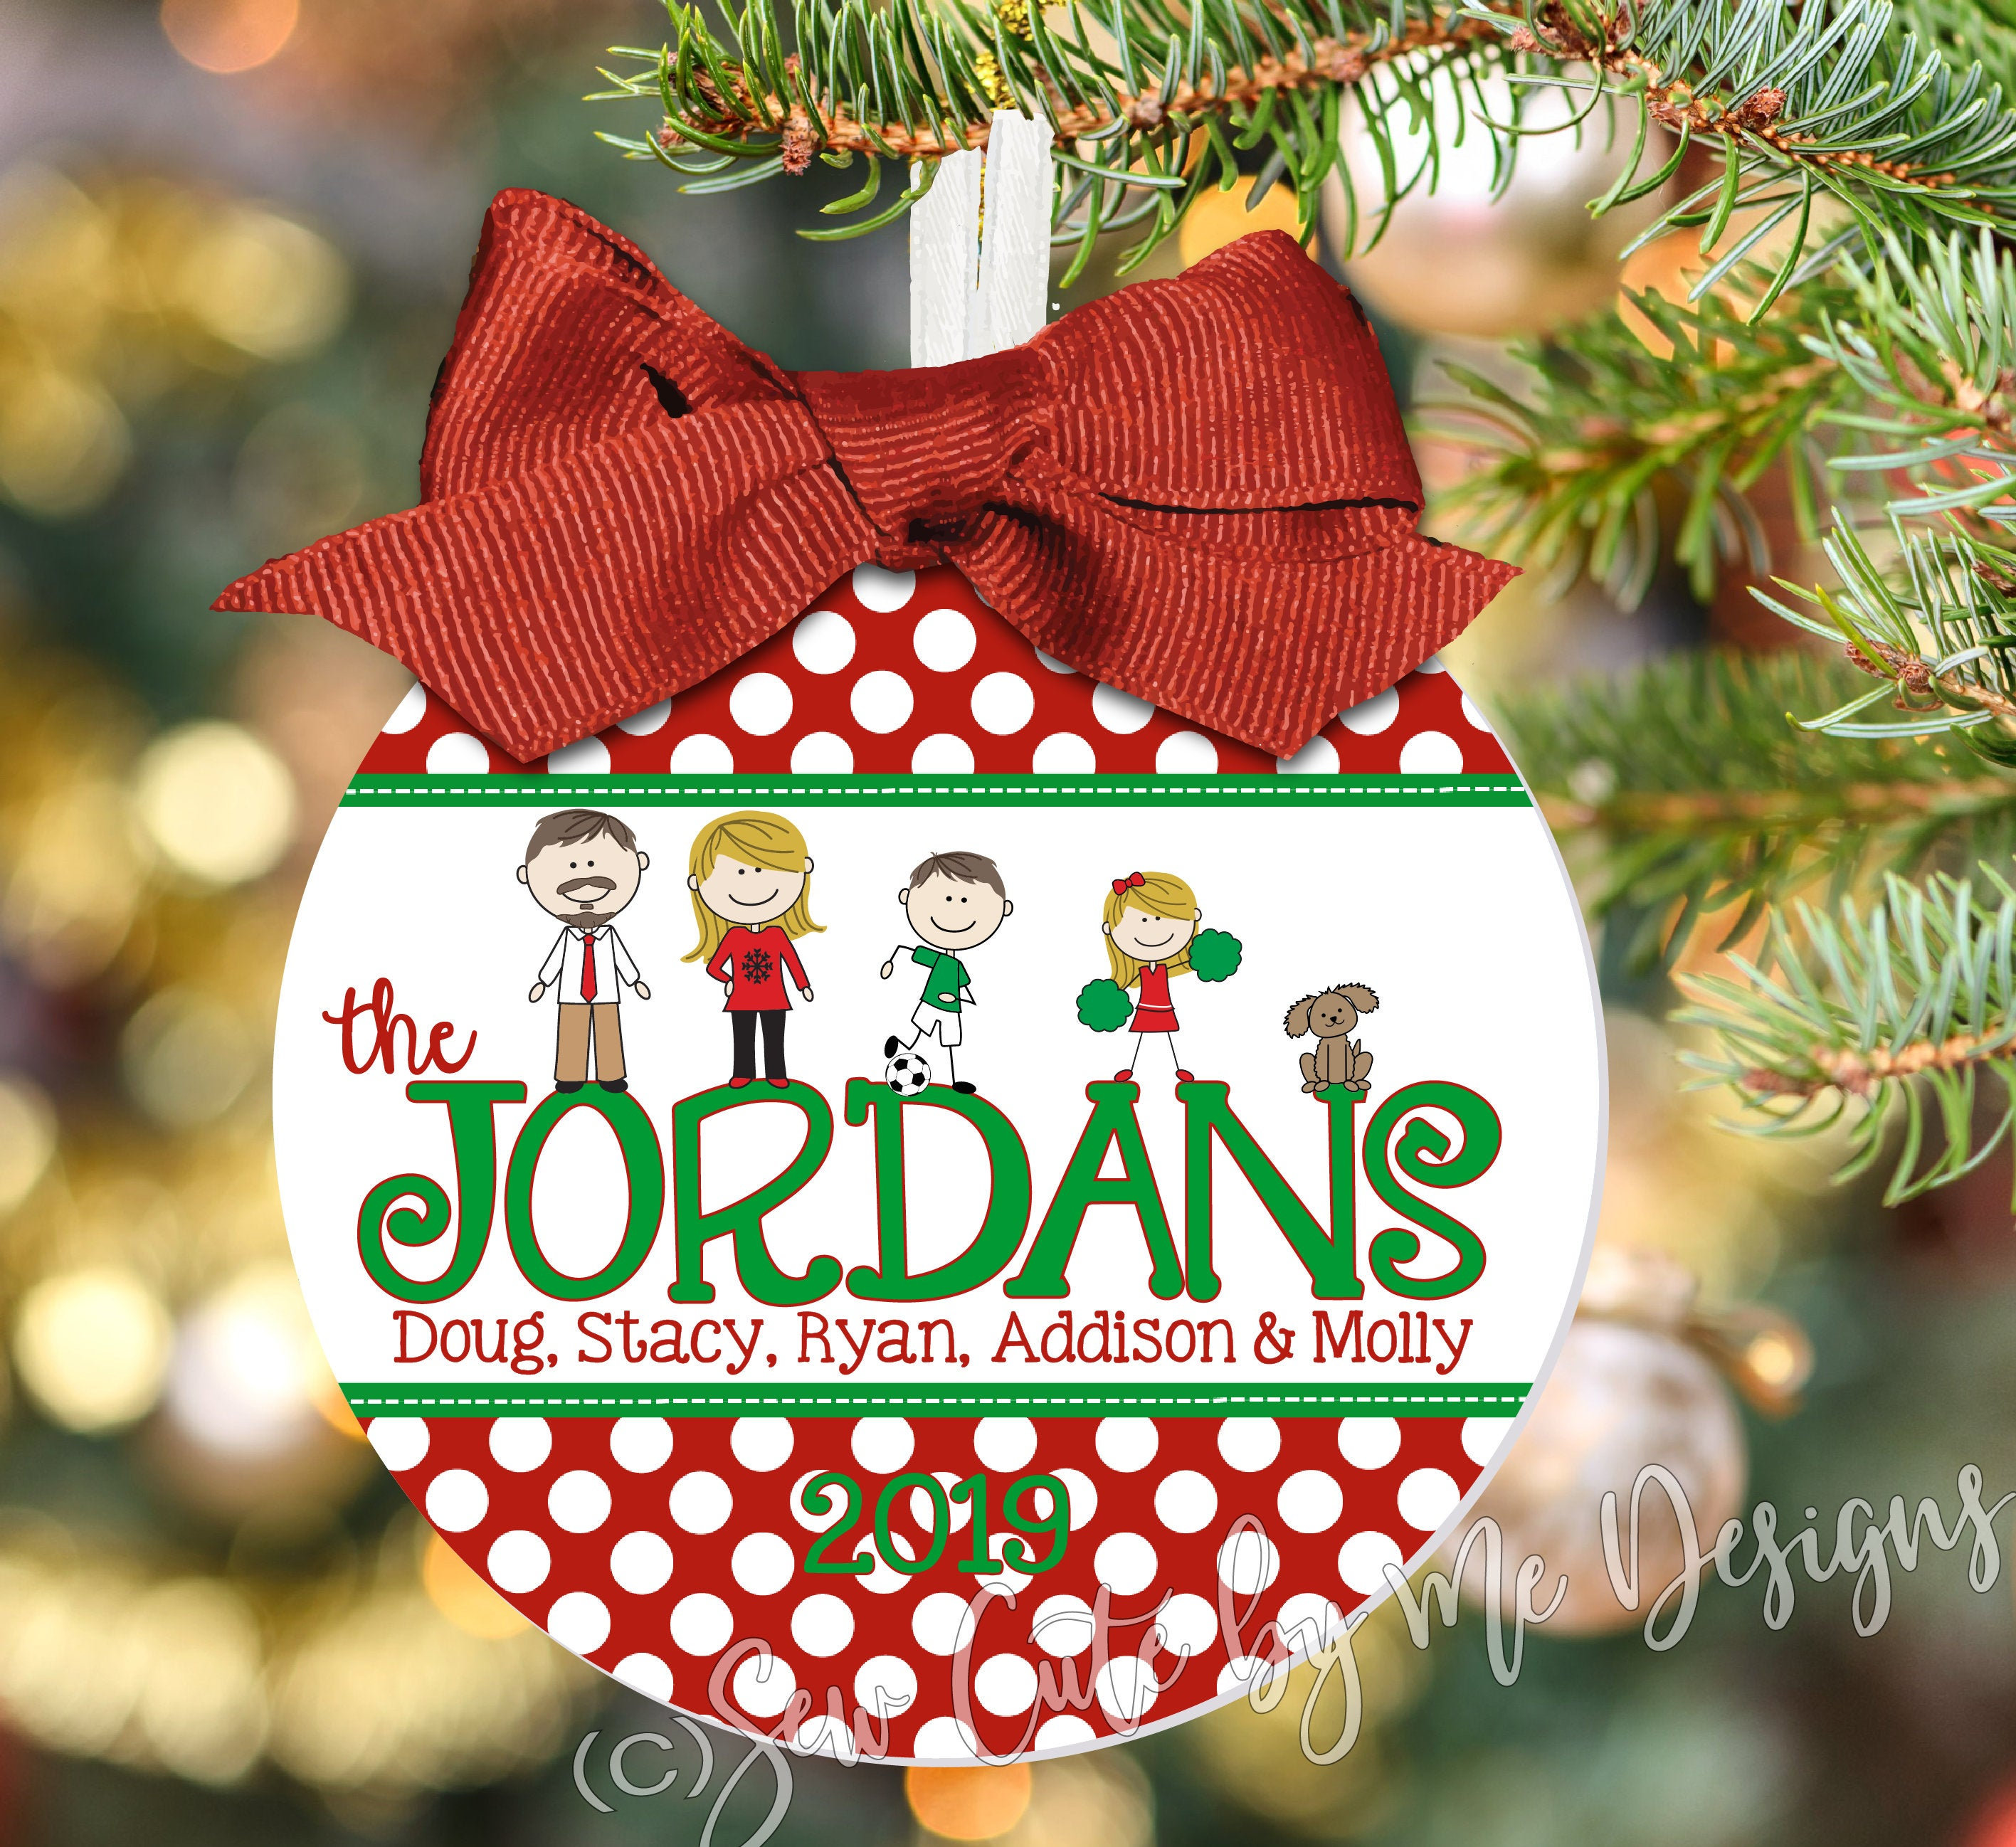 Christmas Ornaments Personalized.4 Family Christmas Ornament Personalized With Characters Names And Year